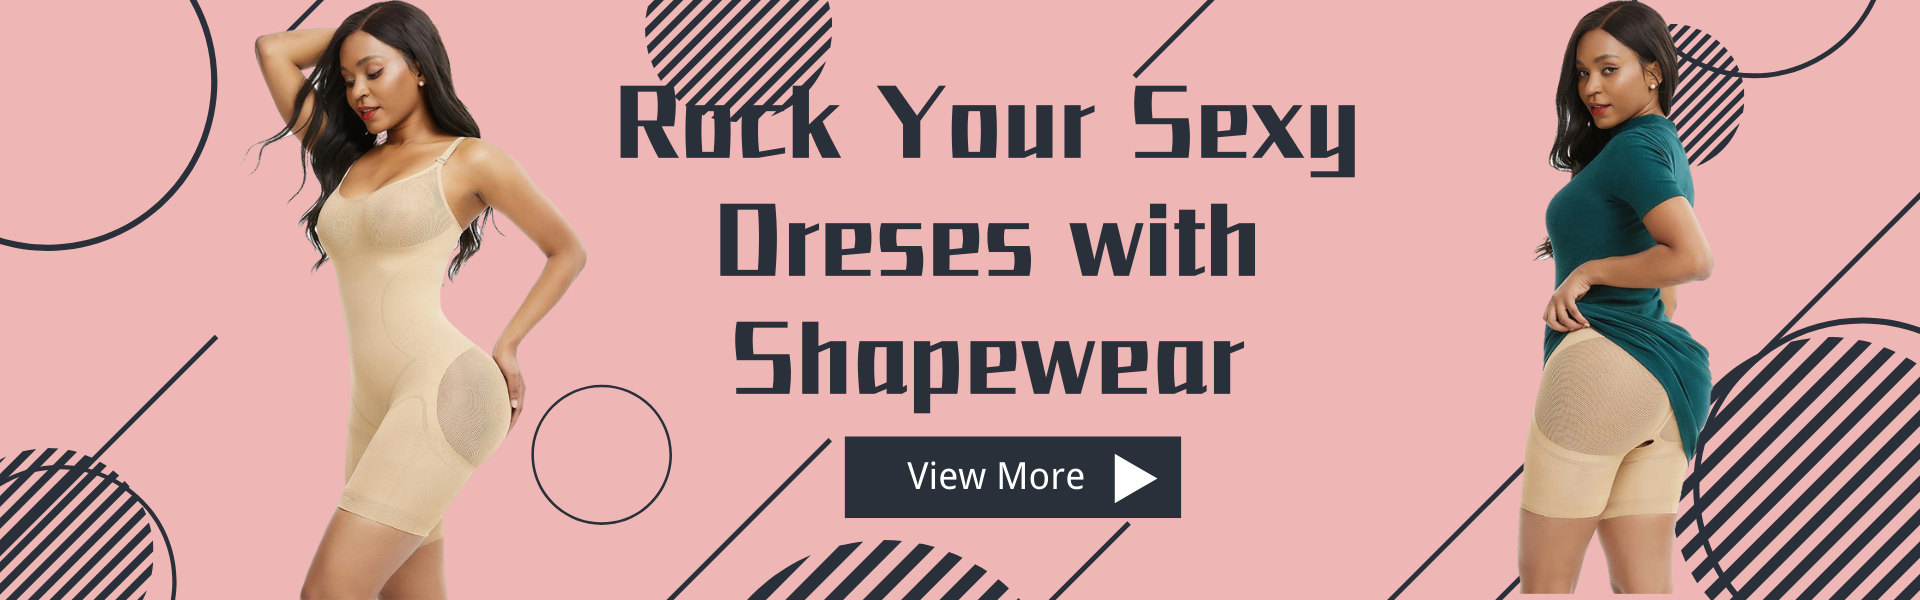 Rock Your Sexy Dreses with Shapewear